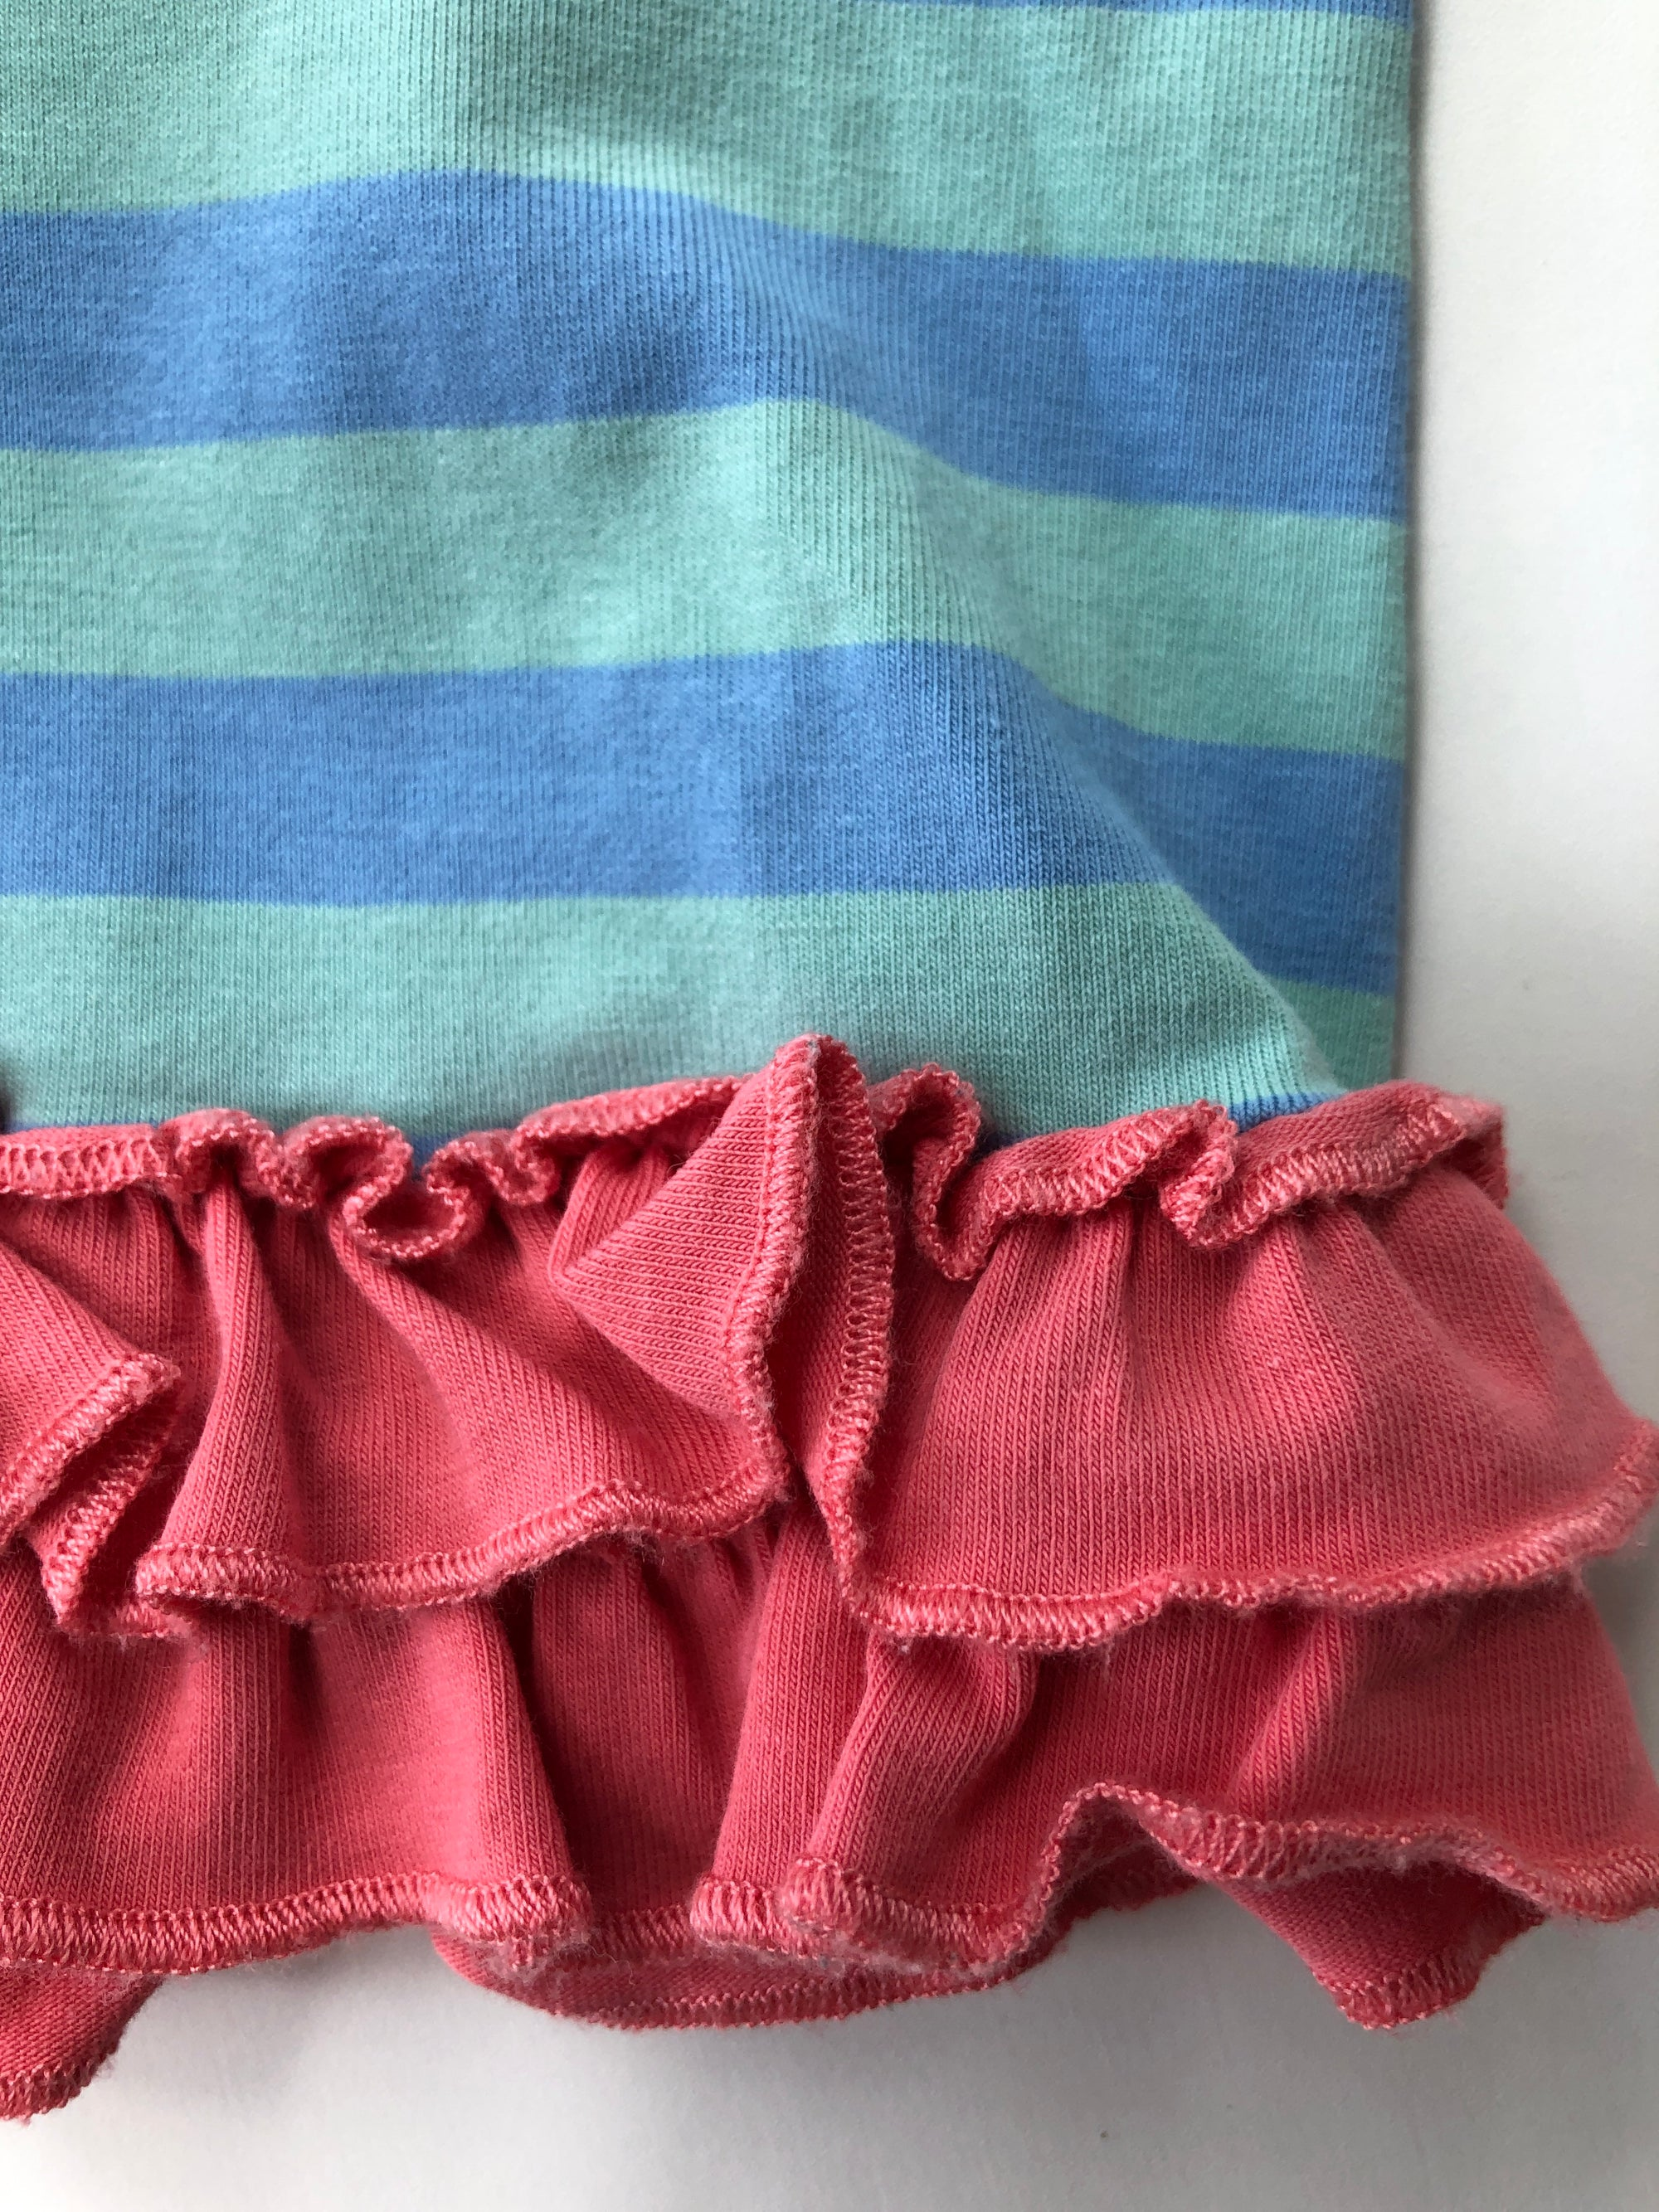 Resale 4T Matilda Jane Sky Blue & Turquoise Stripe Ruffle Shorts